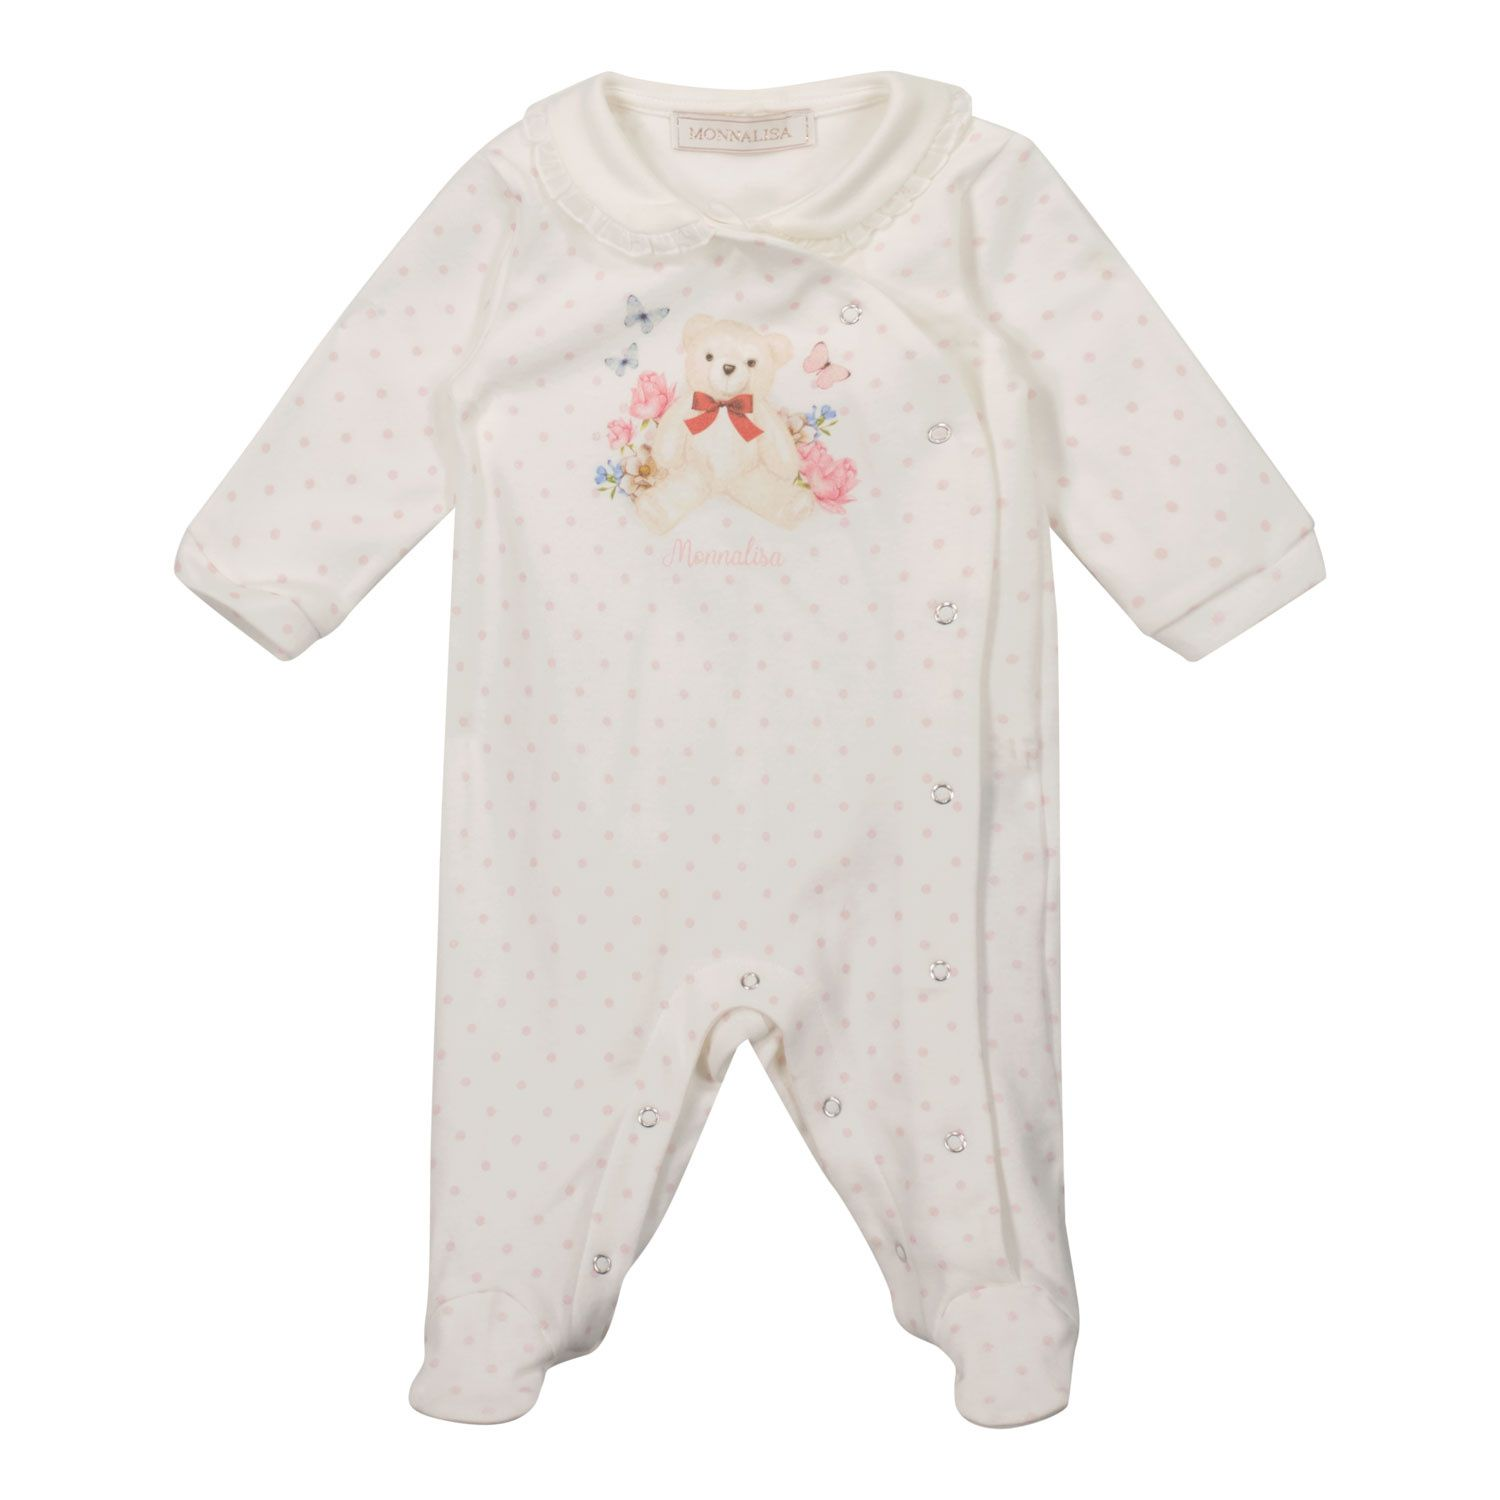 Picture of MonnaLisa 358209PF baby playsuit white